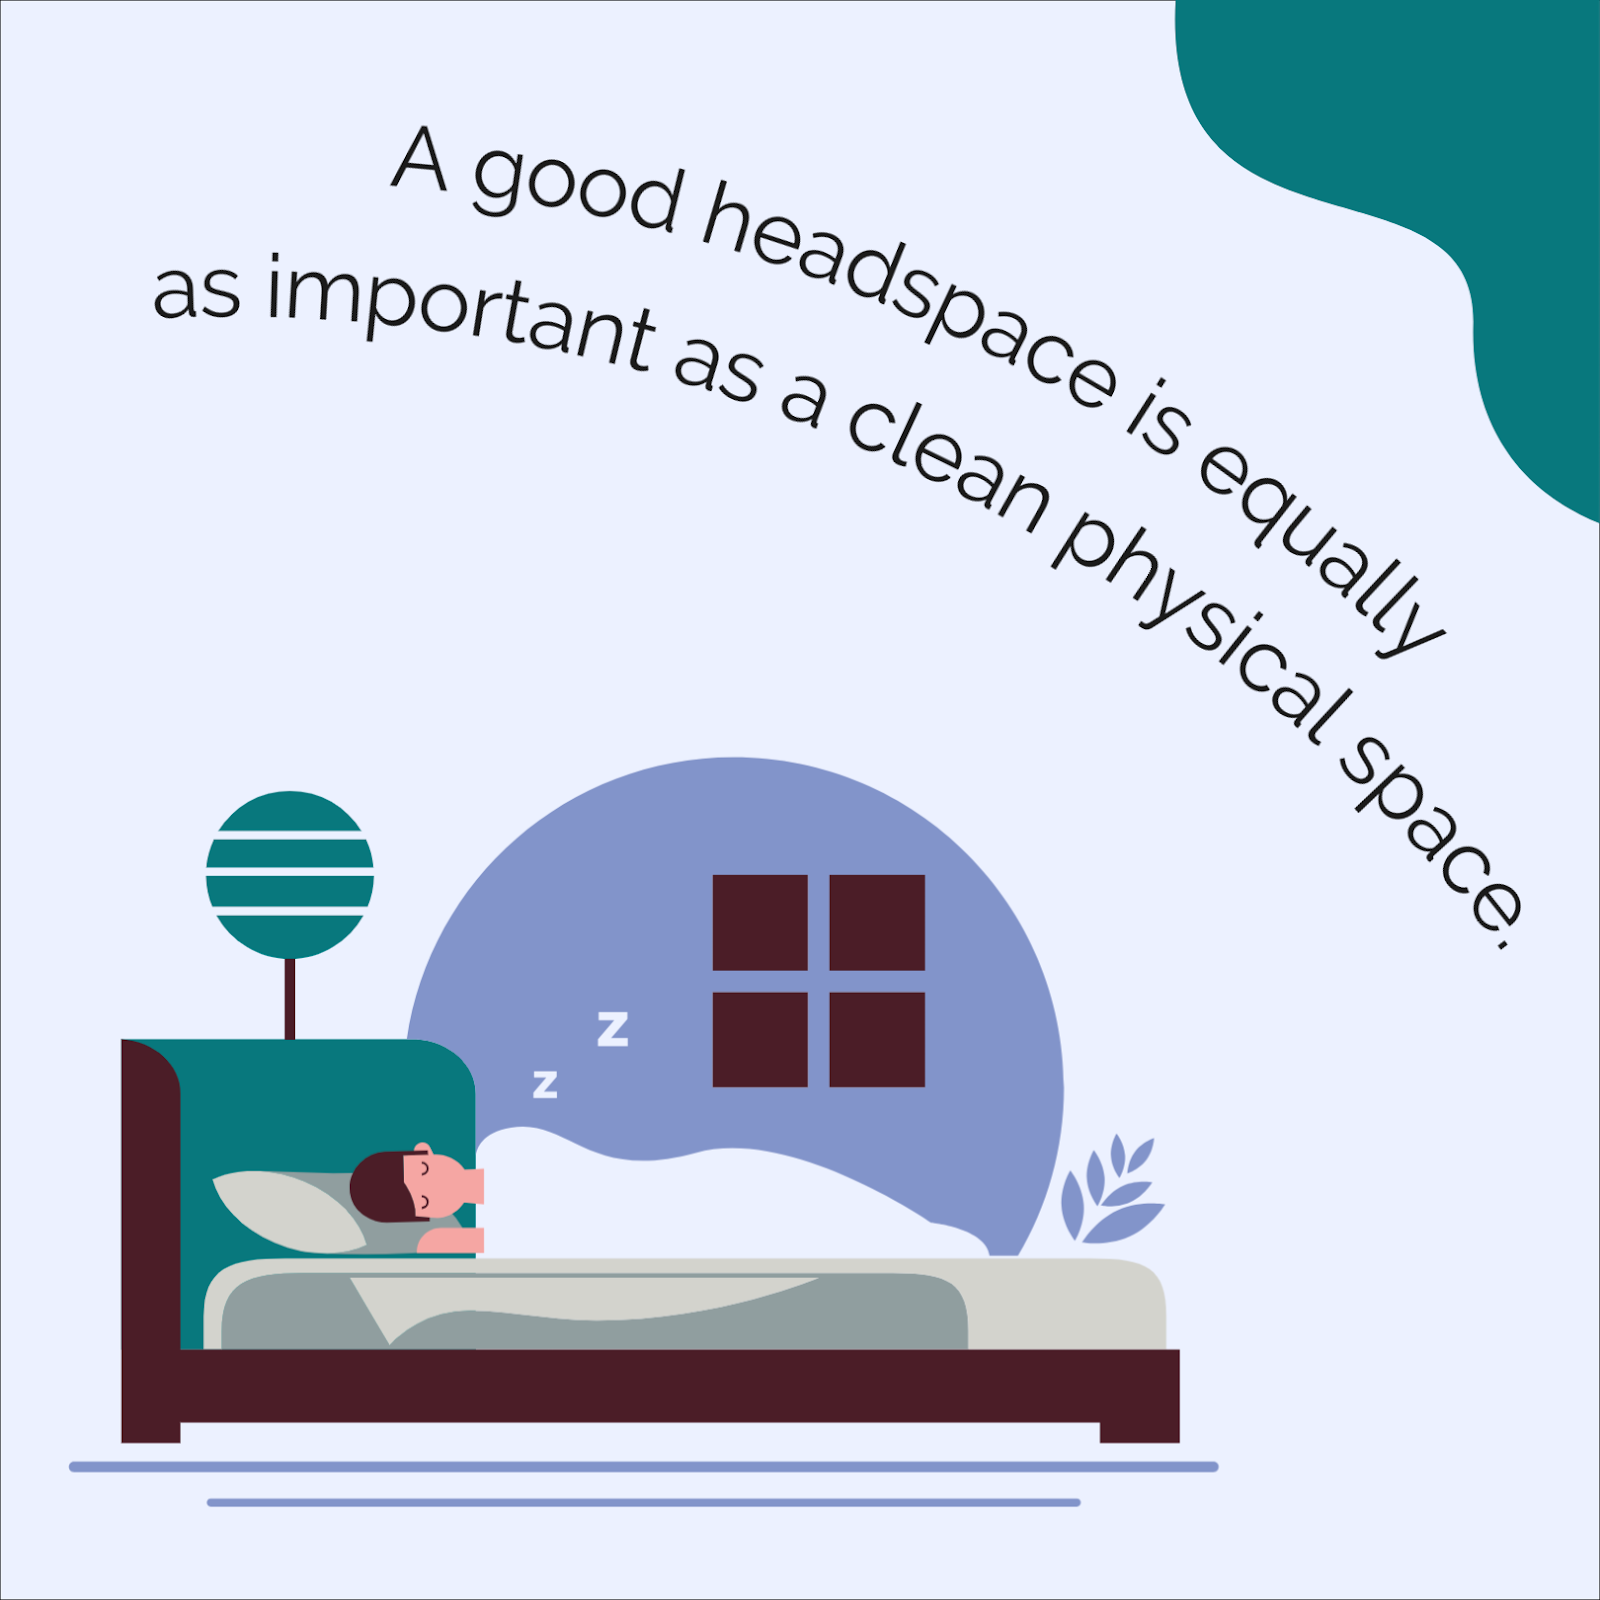 A good headspace is equally as important as a clean physical space, start a new year with good health.